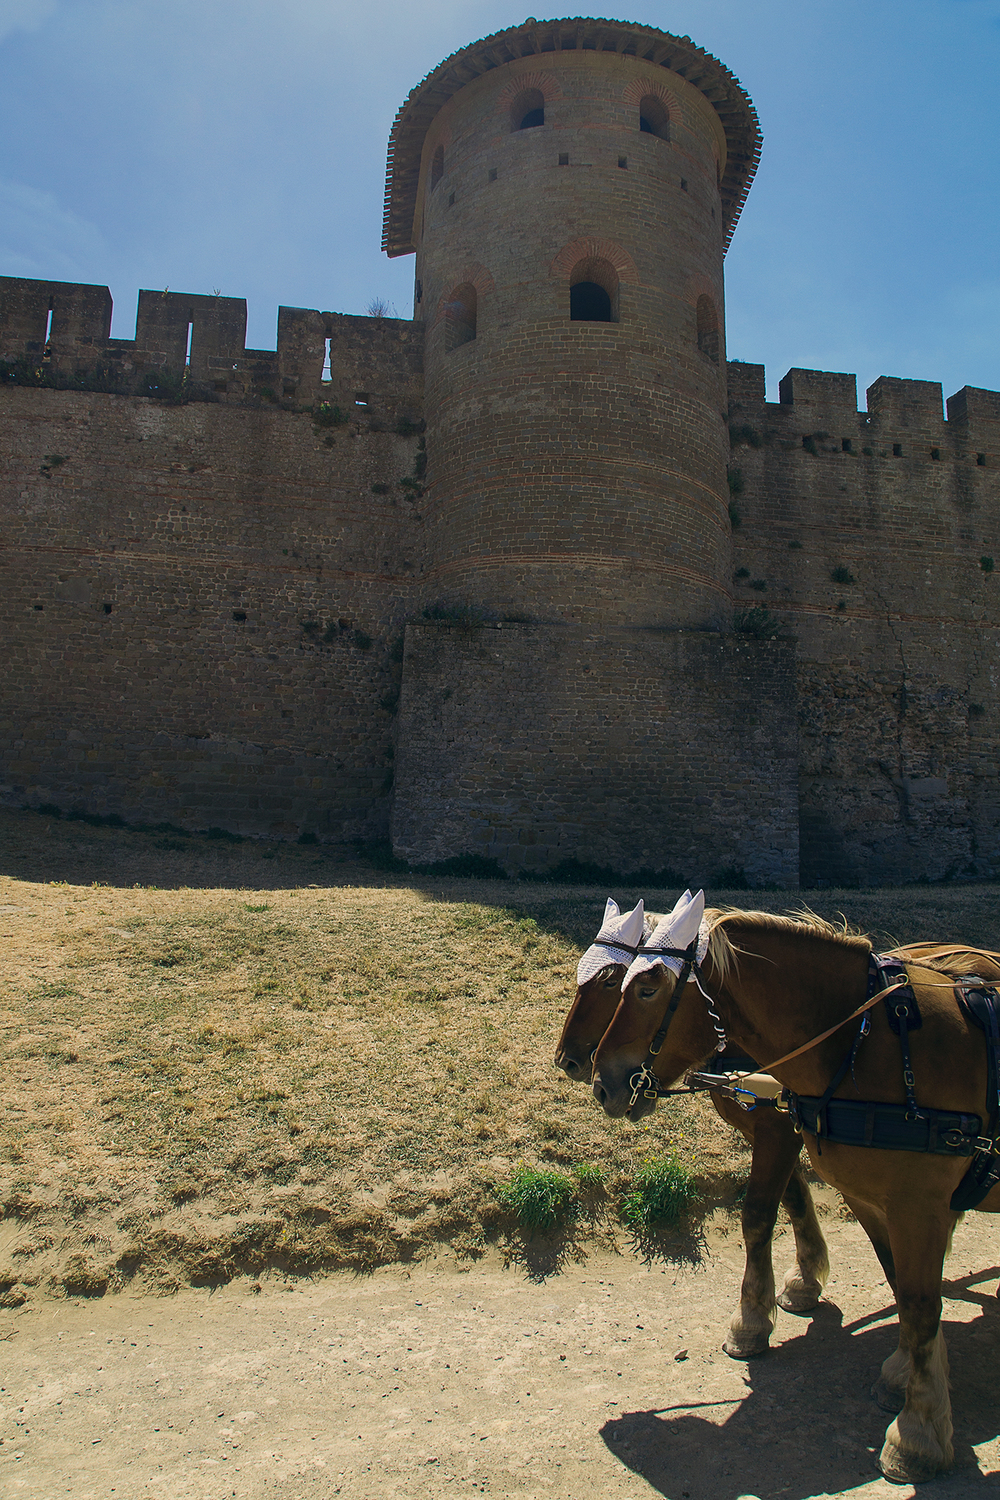 The Horses and Castle